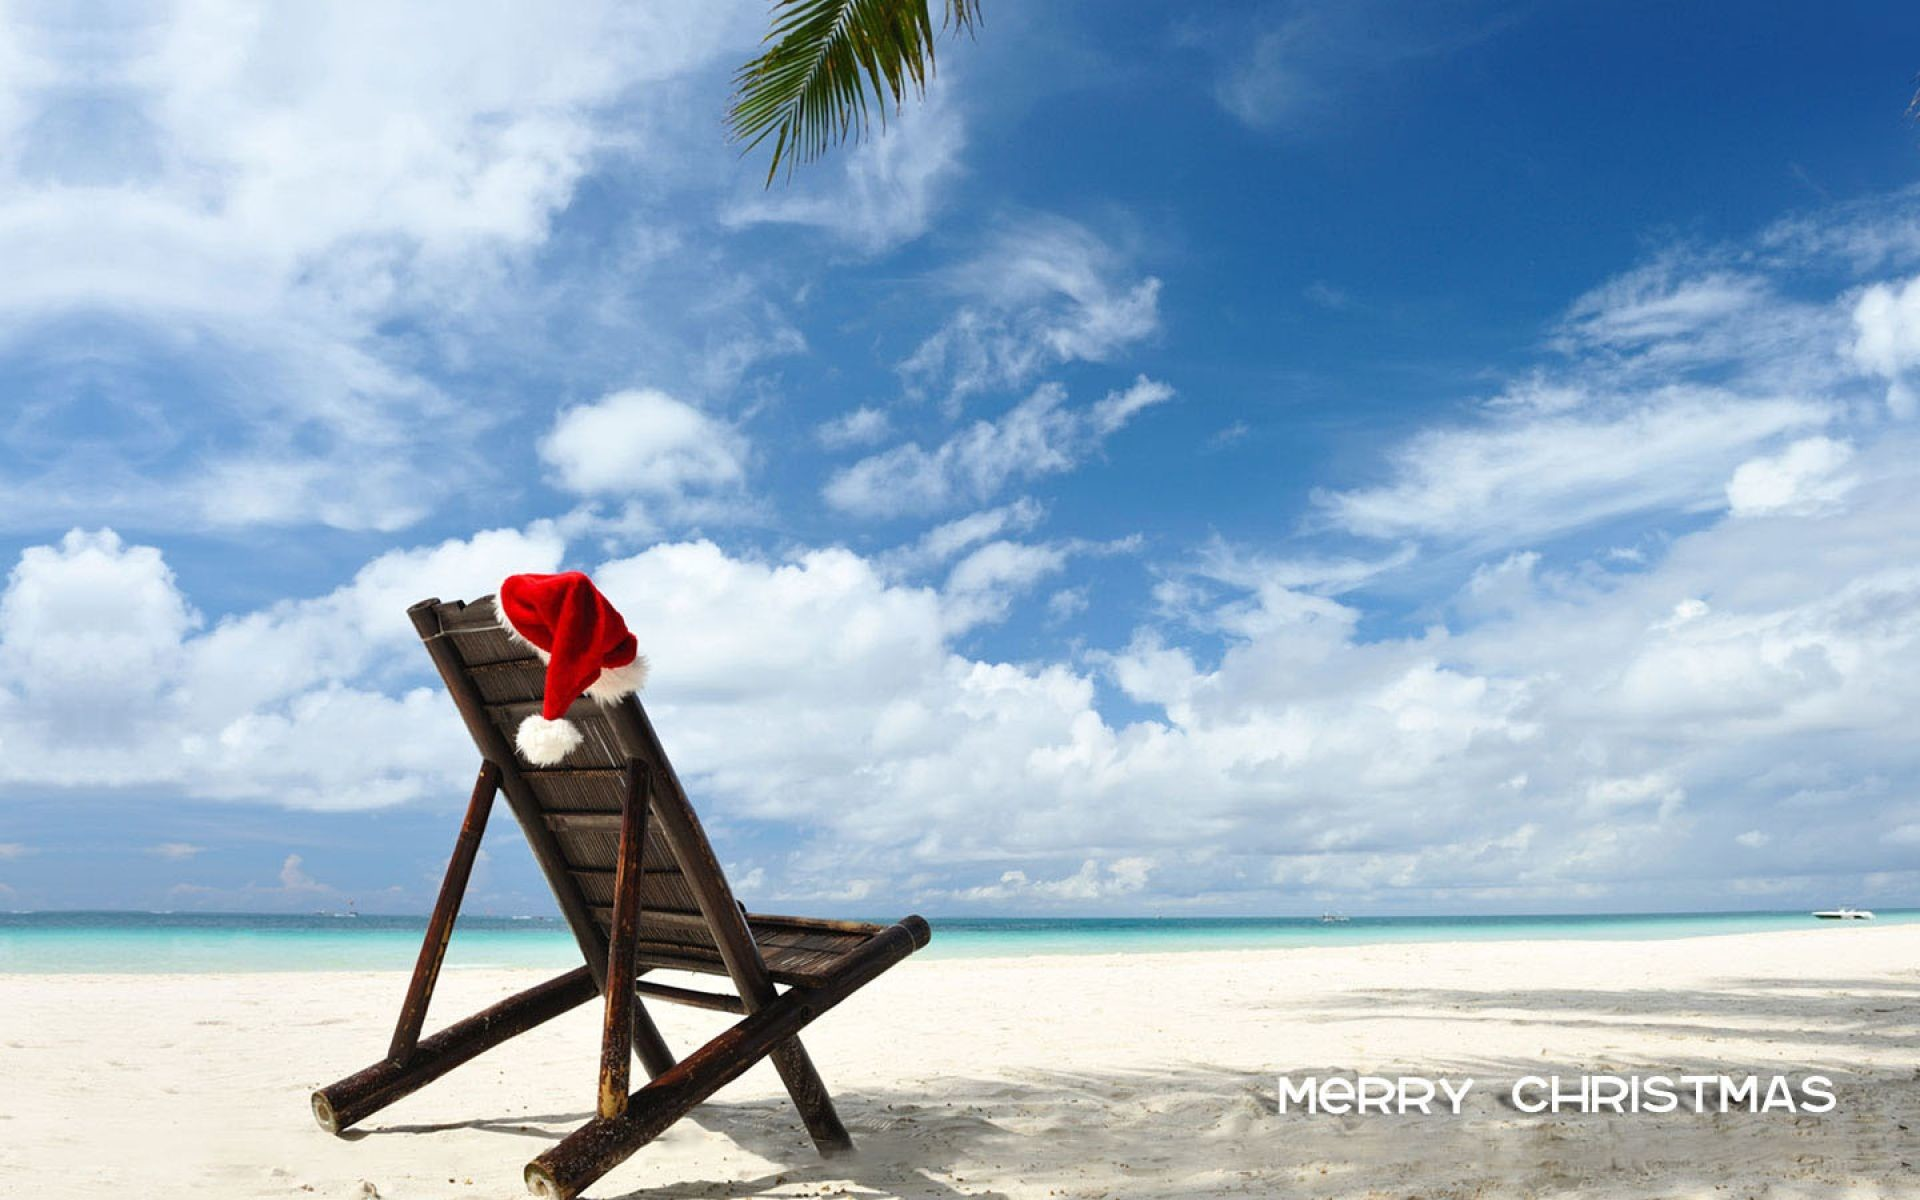 Merry Christmas At Beach | HD Christmas Wallpaper Free Download …